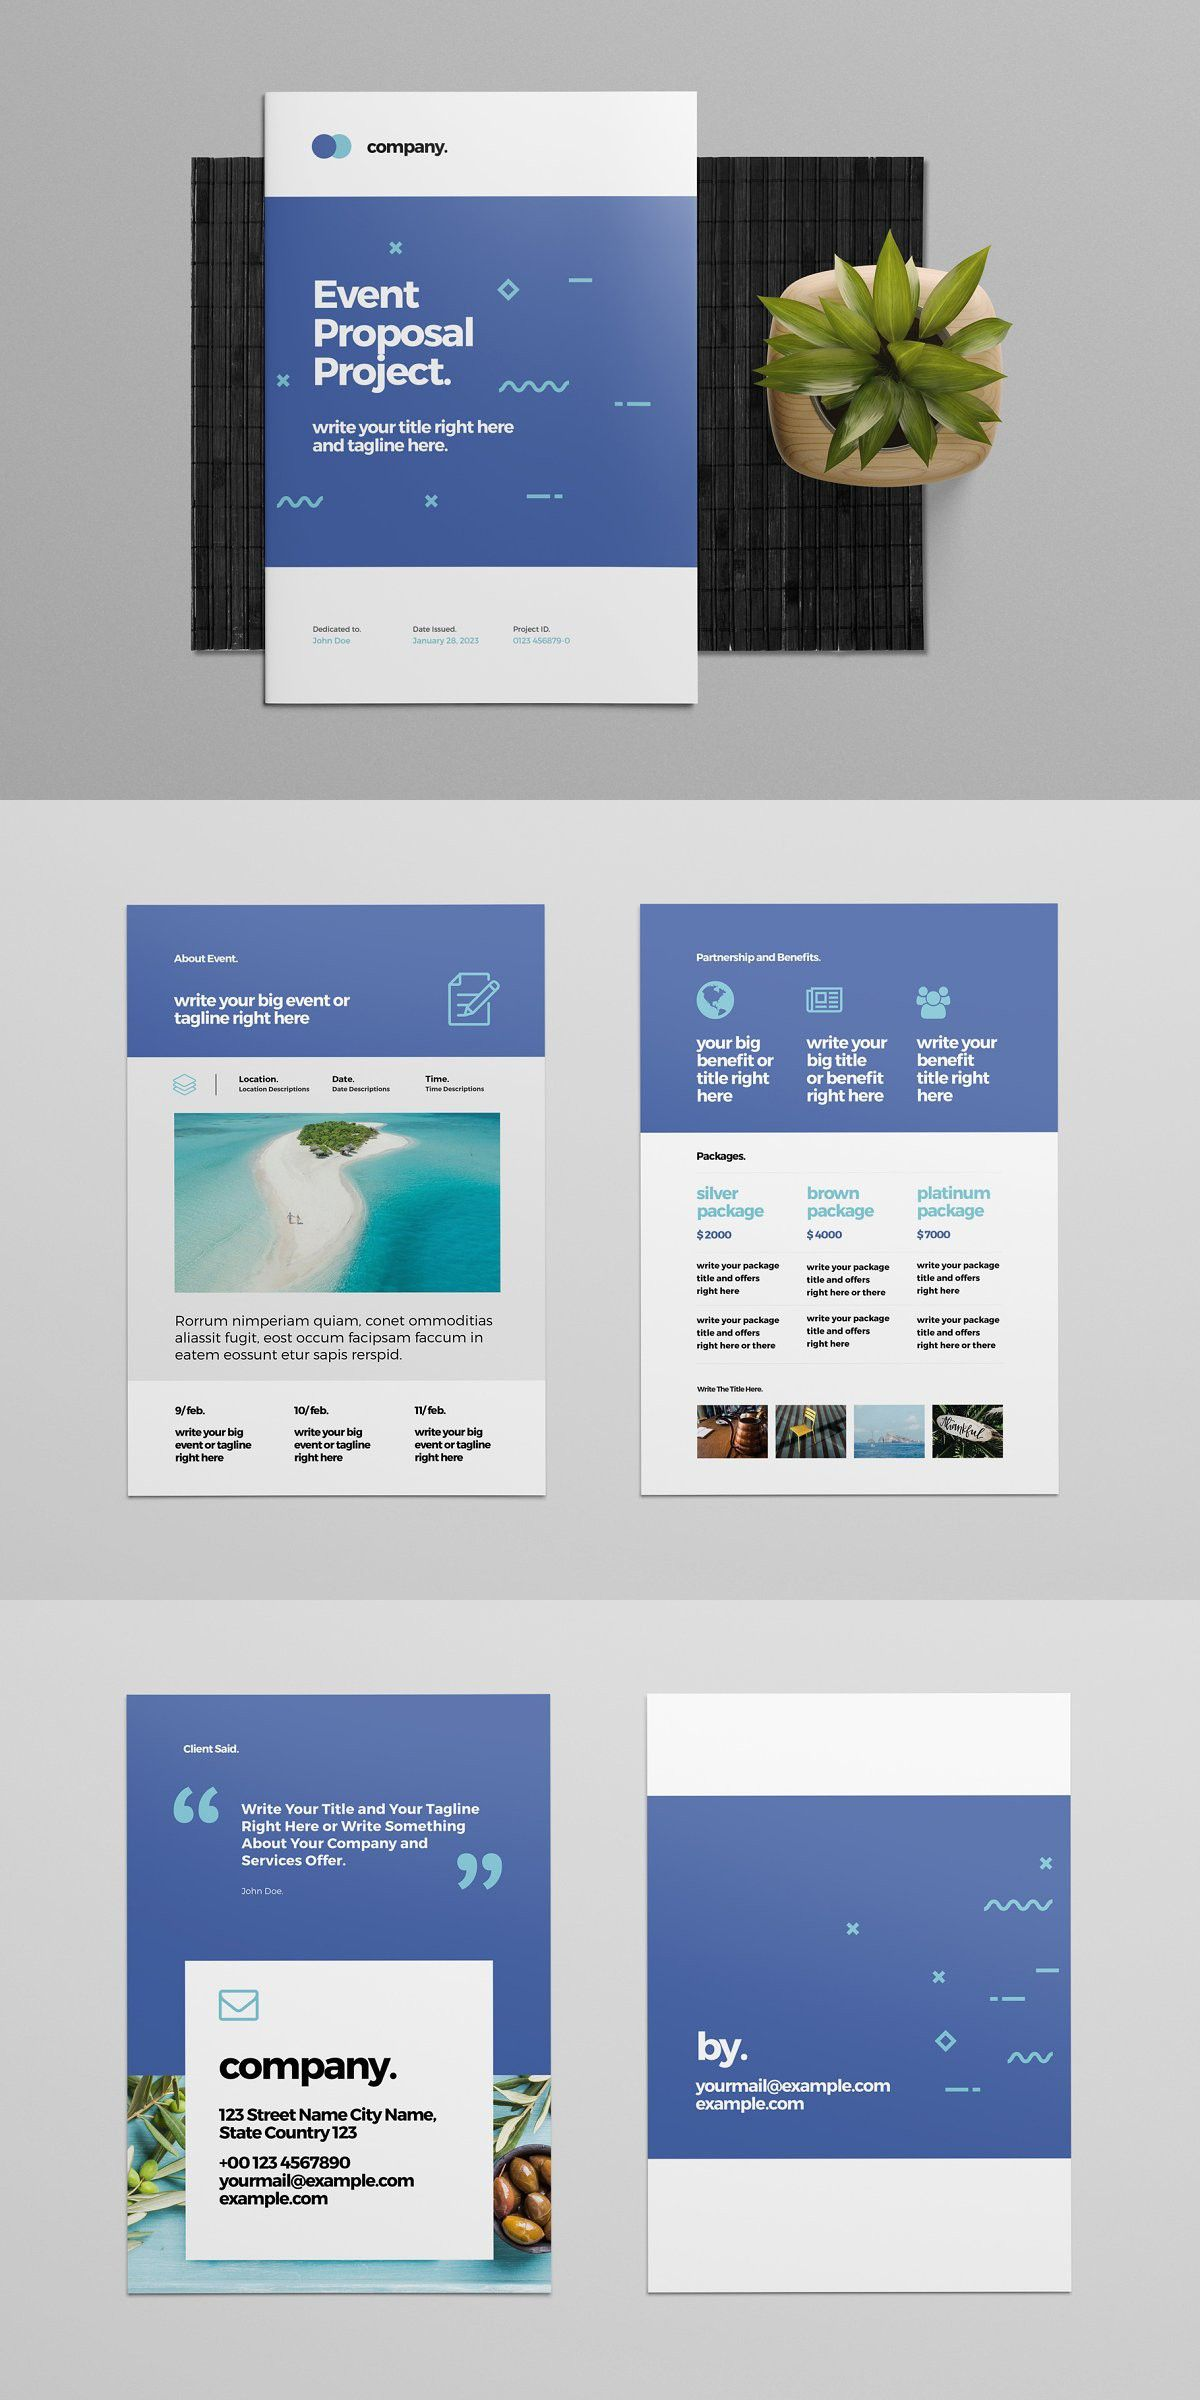 Event Proposal Layout in 2020 Event proposal, Web design